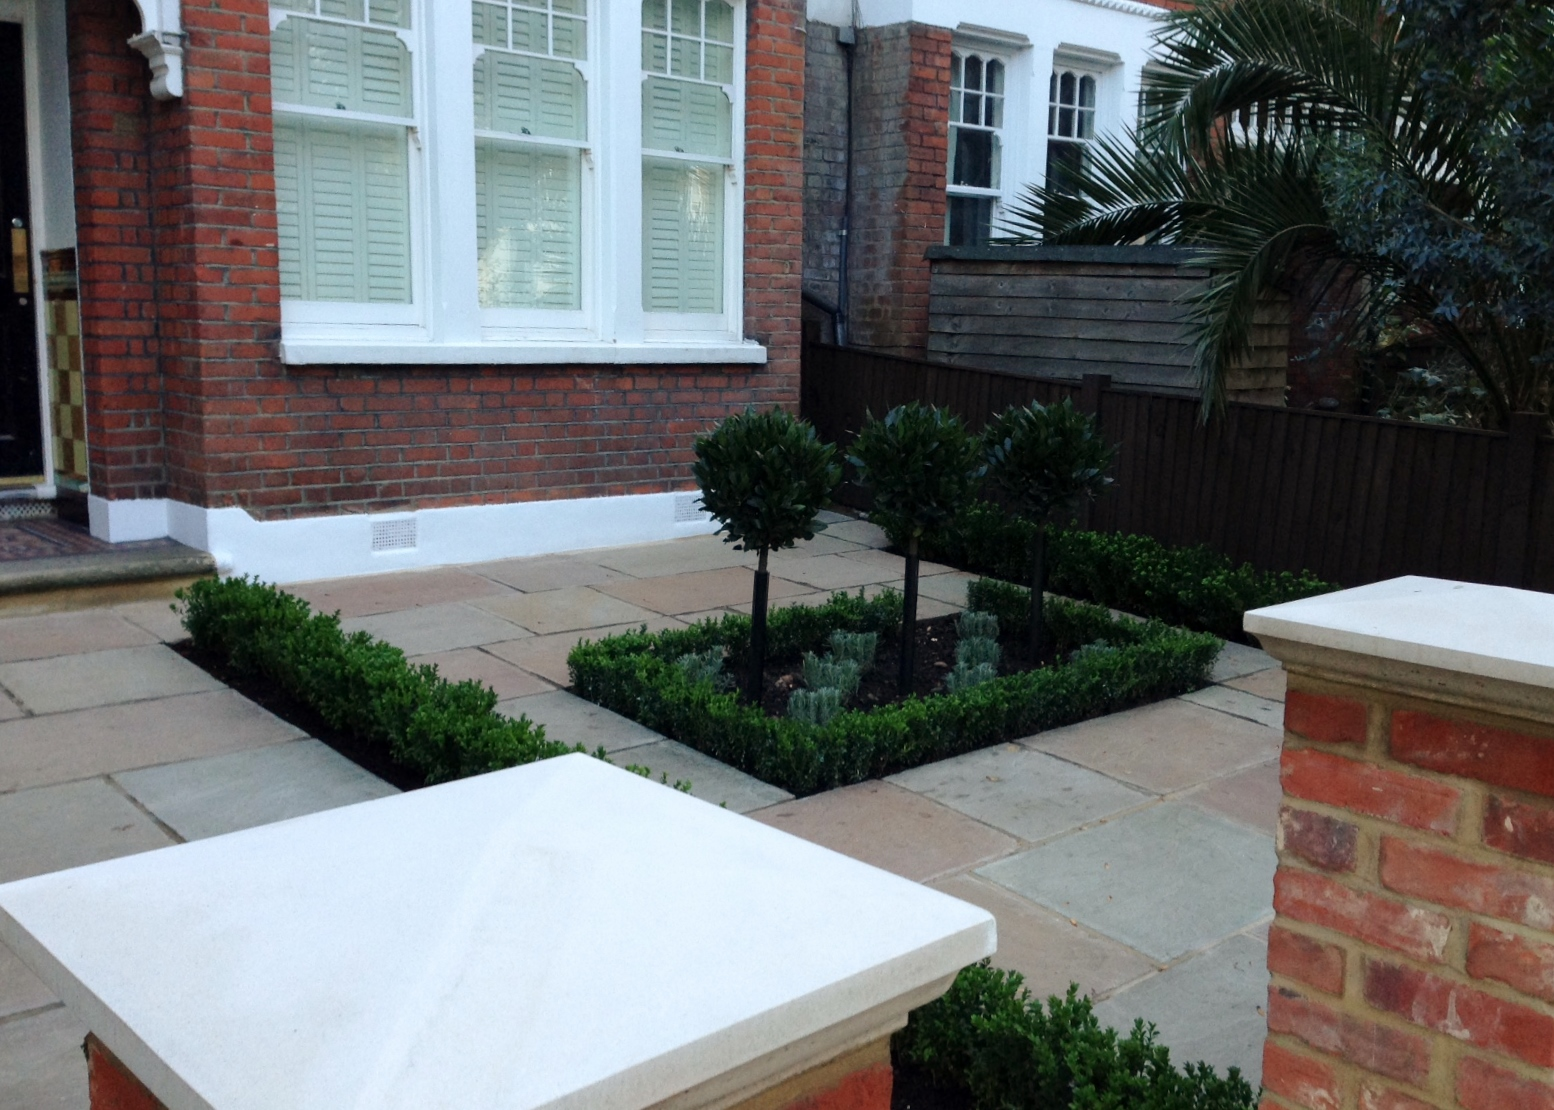 Imperial red brick London wall stone pier caps sandstone paving and formal topiary classic front garden Balham (8)